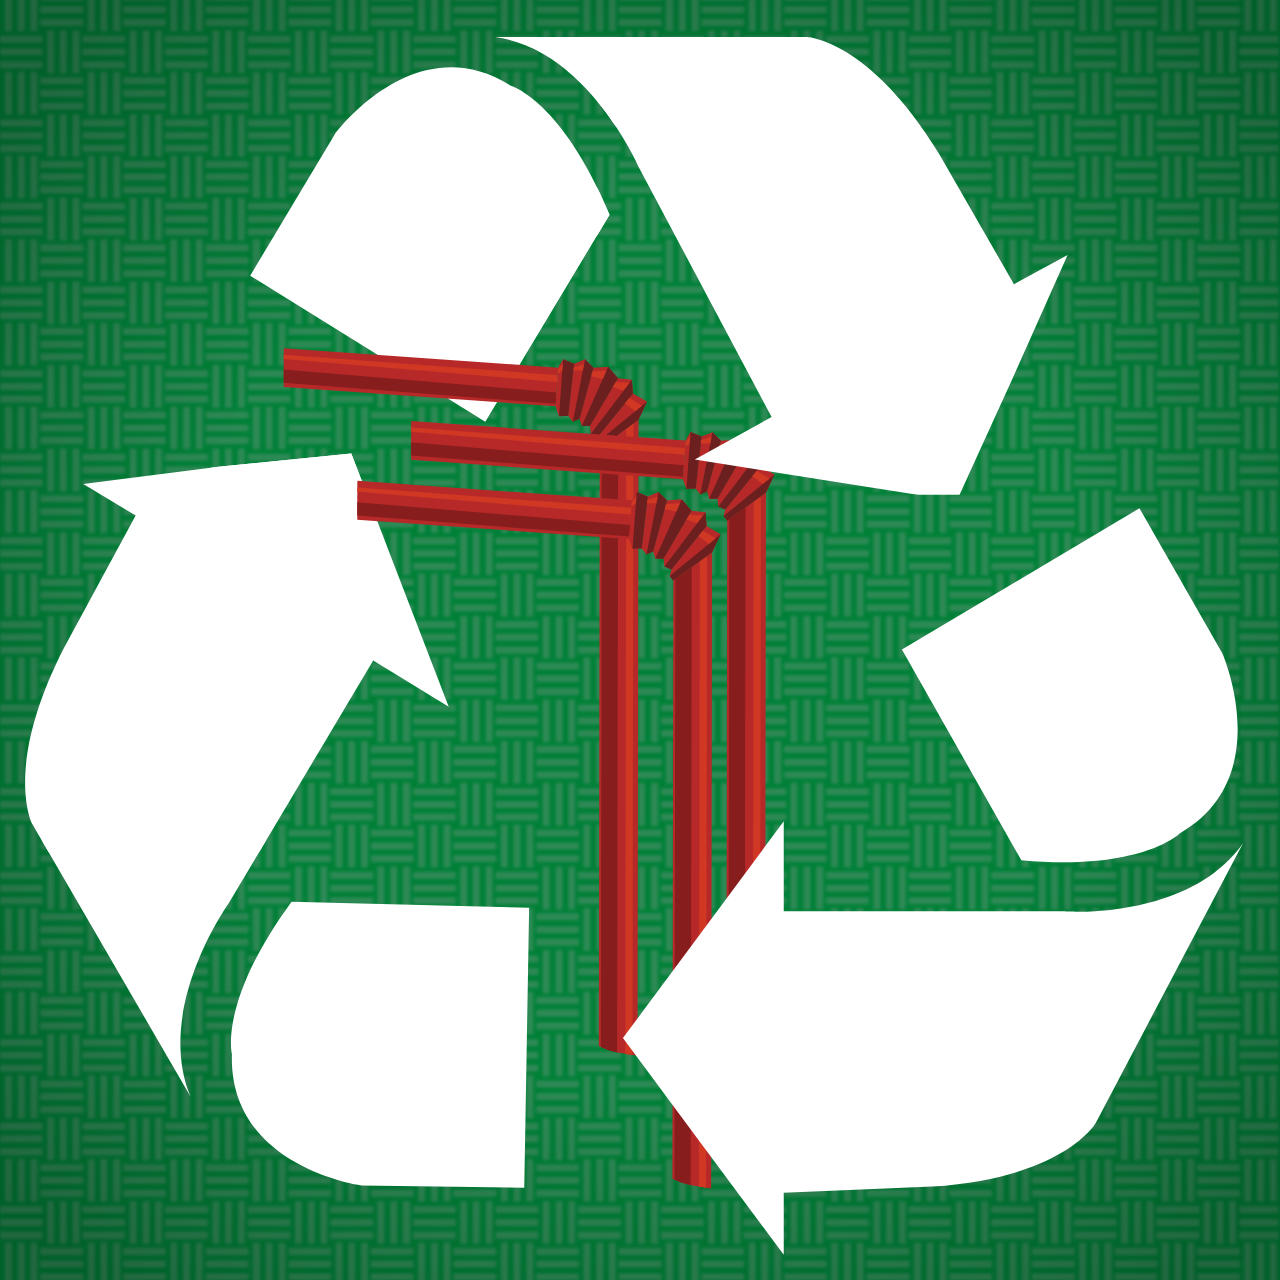 Some plastic straws surrounded by the Recycling Symbol